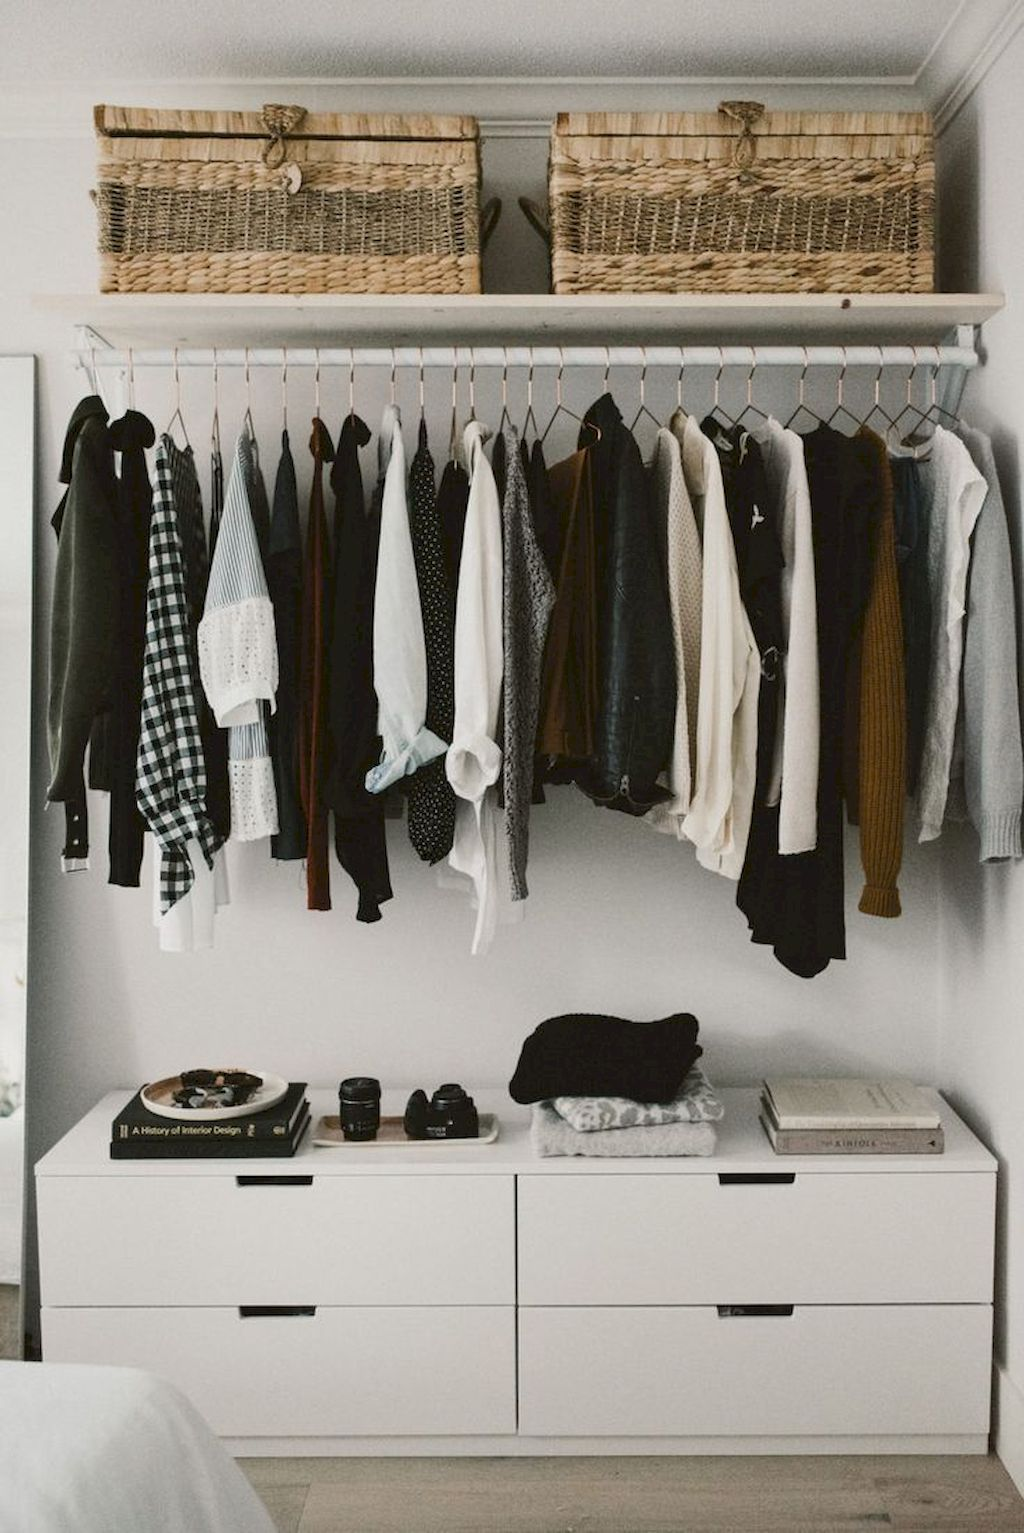 Diy Fitted Wardrobes Save House And Add Type Small Bedroom Decor Bedroom Organization Closet Bedroom Decor For